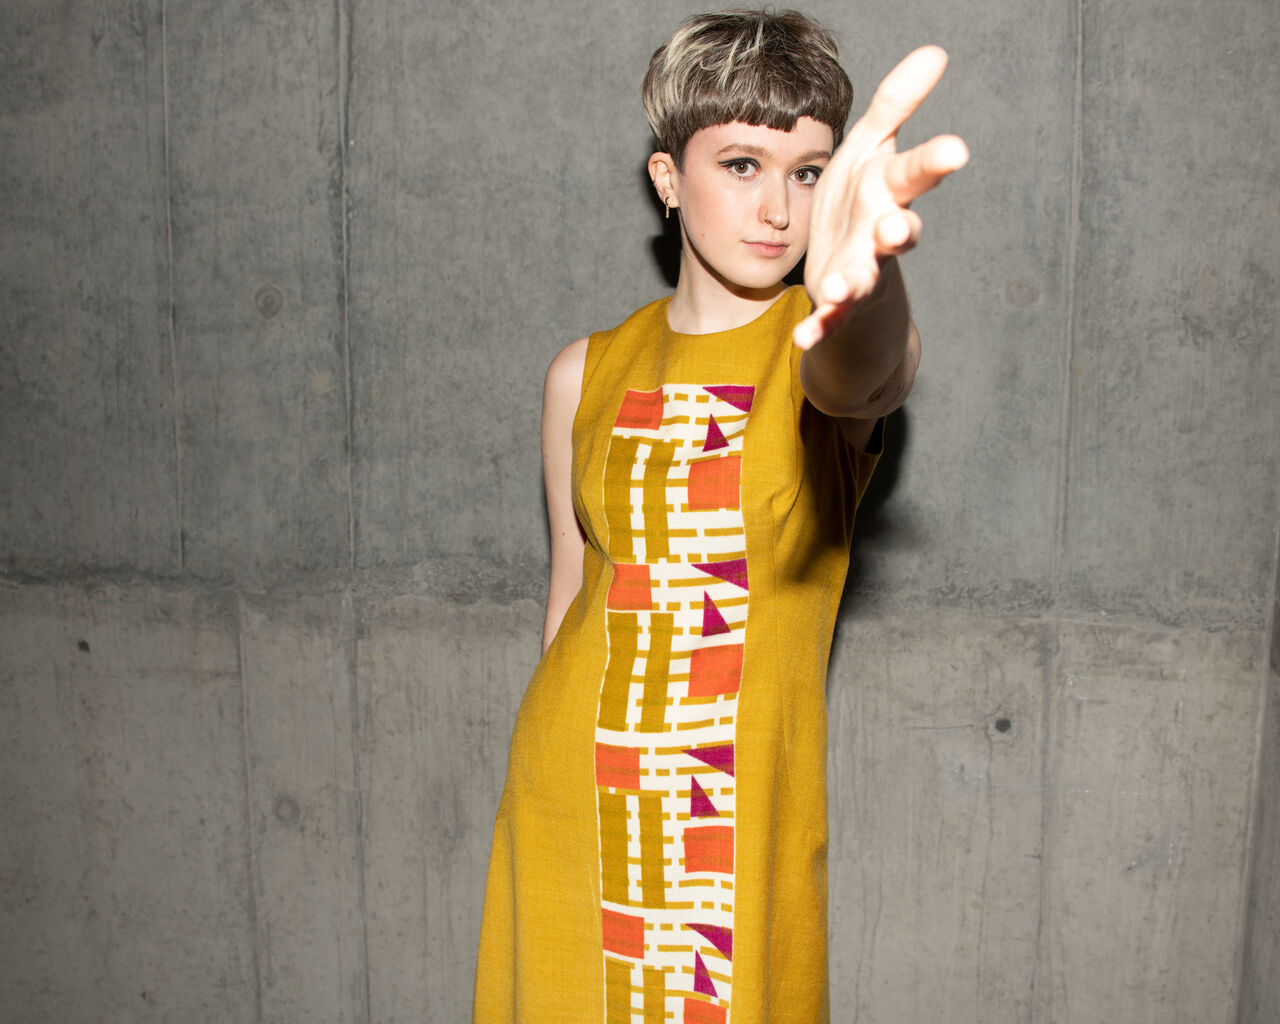 A model wearing a bright colourful, Mary Quant-inspired garment.